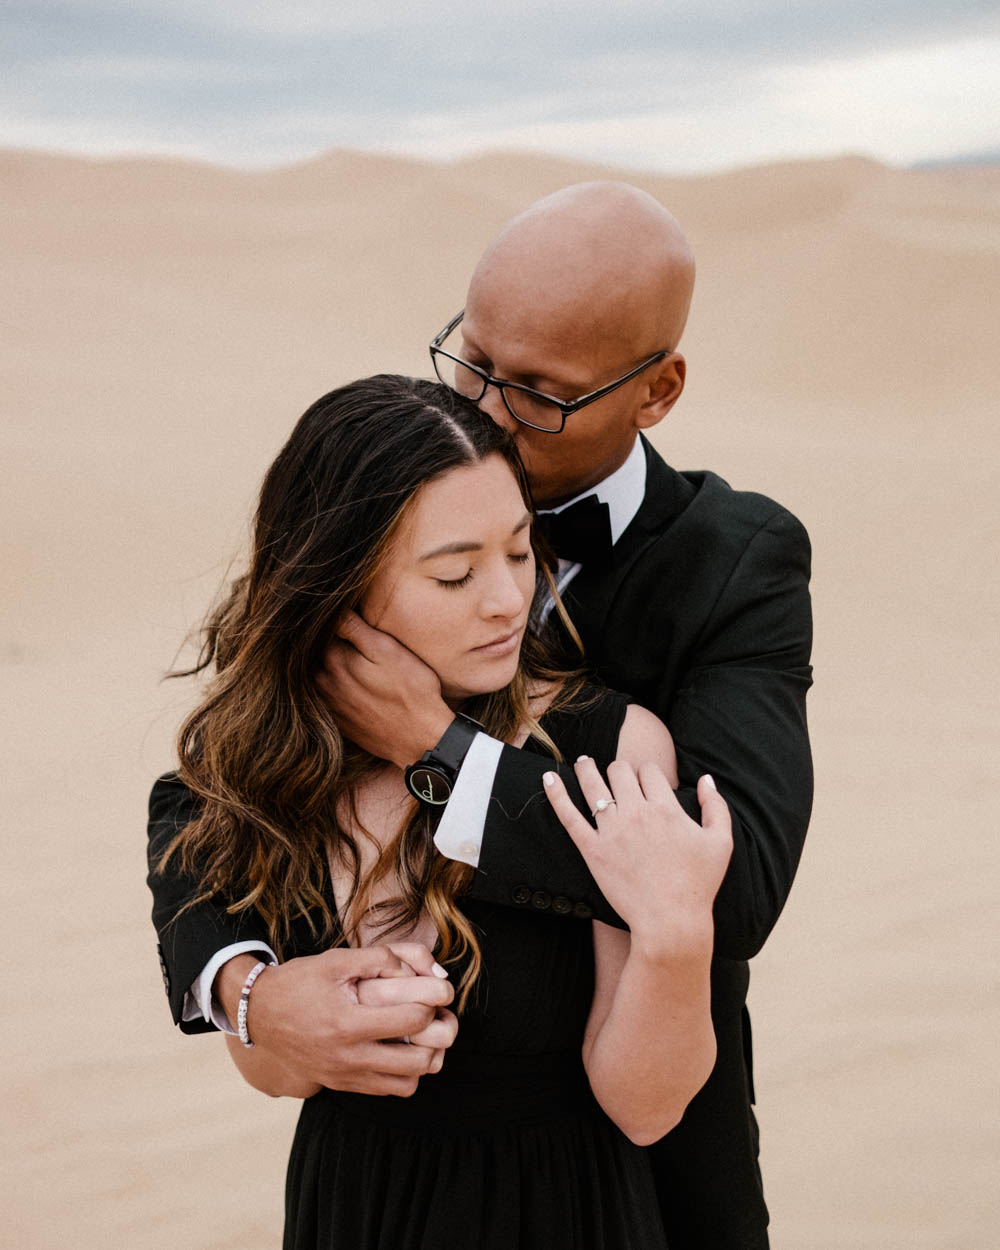 California top 33 epic engagement photography locations intimate moment in the desert